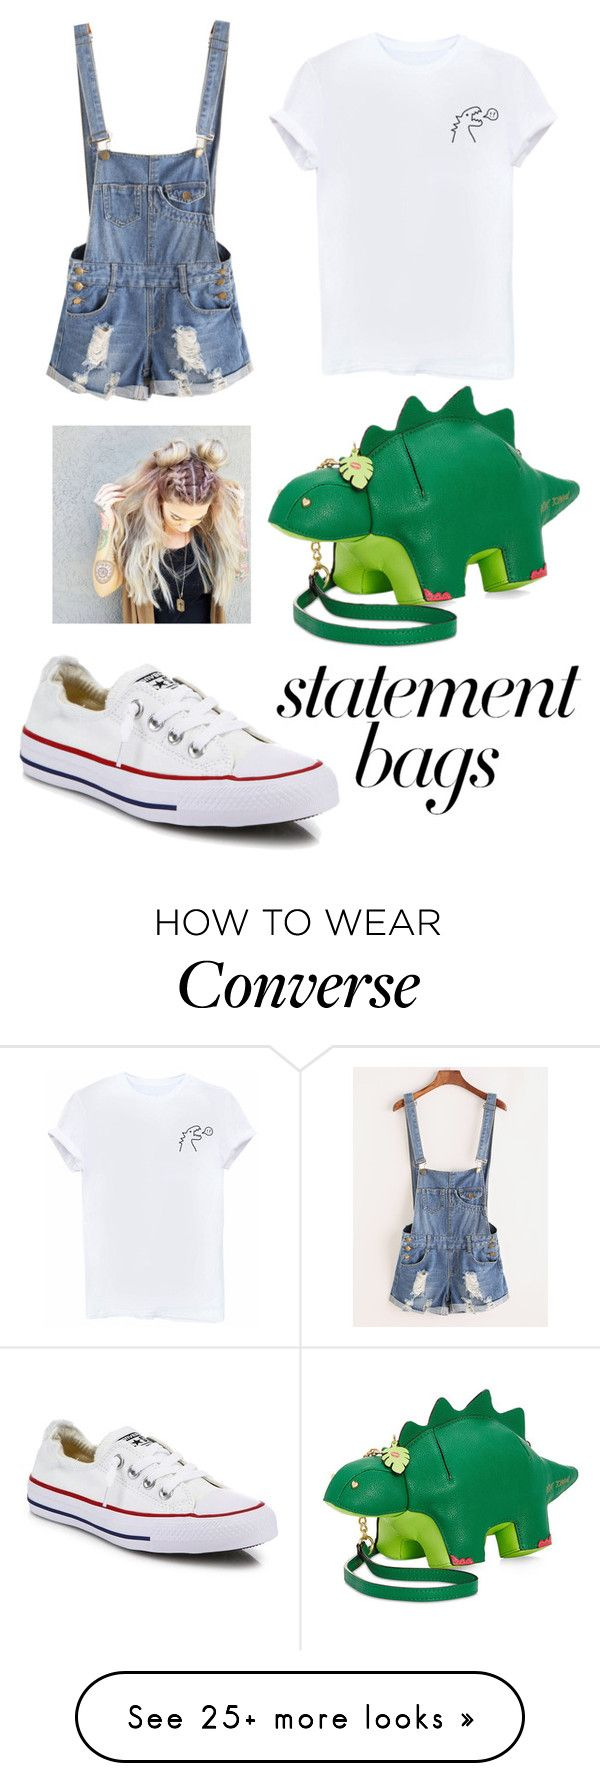 """""""Pre-historic"""" by small-peanut on Polyvore featuring Betsey Johnson, Converse and statementbags"""